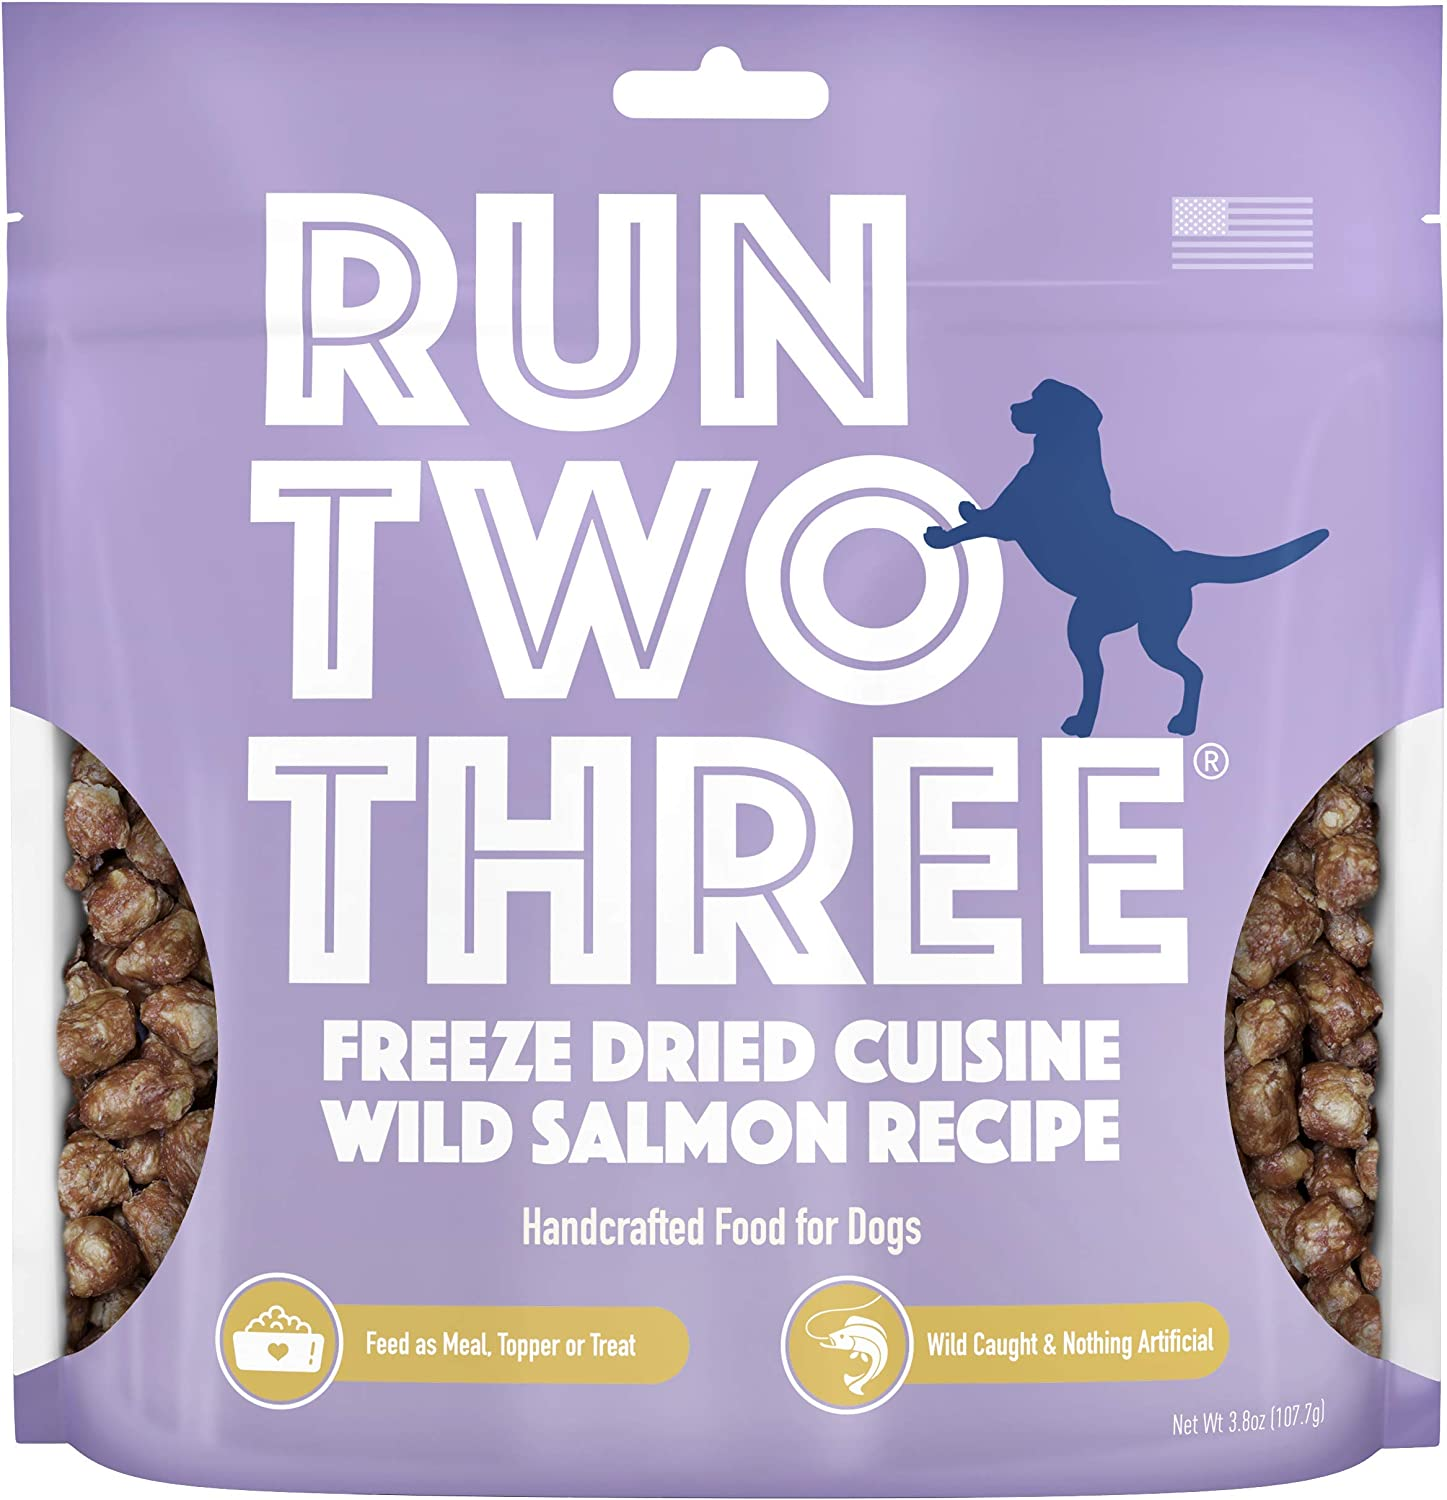 Run Two Three Freeze Dried Cuisine Recipe - Raw Dog Food, Dog Food Topper or Dog Treats, Ultra Premium Quality, All Natural, Few Ingredients, High Energy Proteins, Balanced Nutrition, Made in The USA